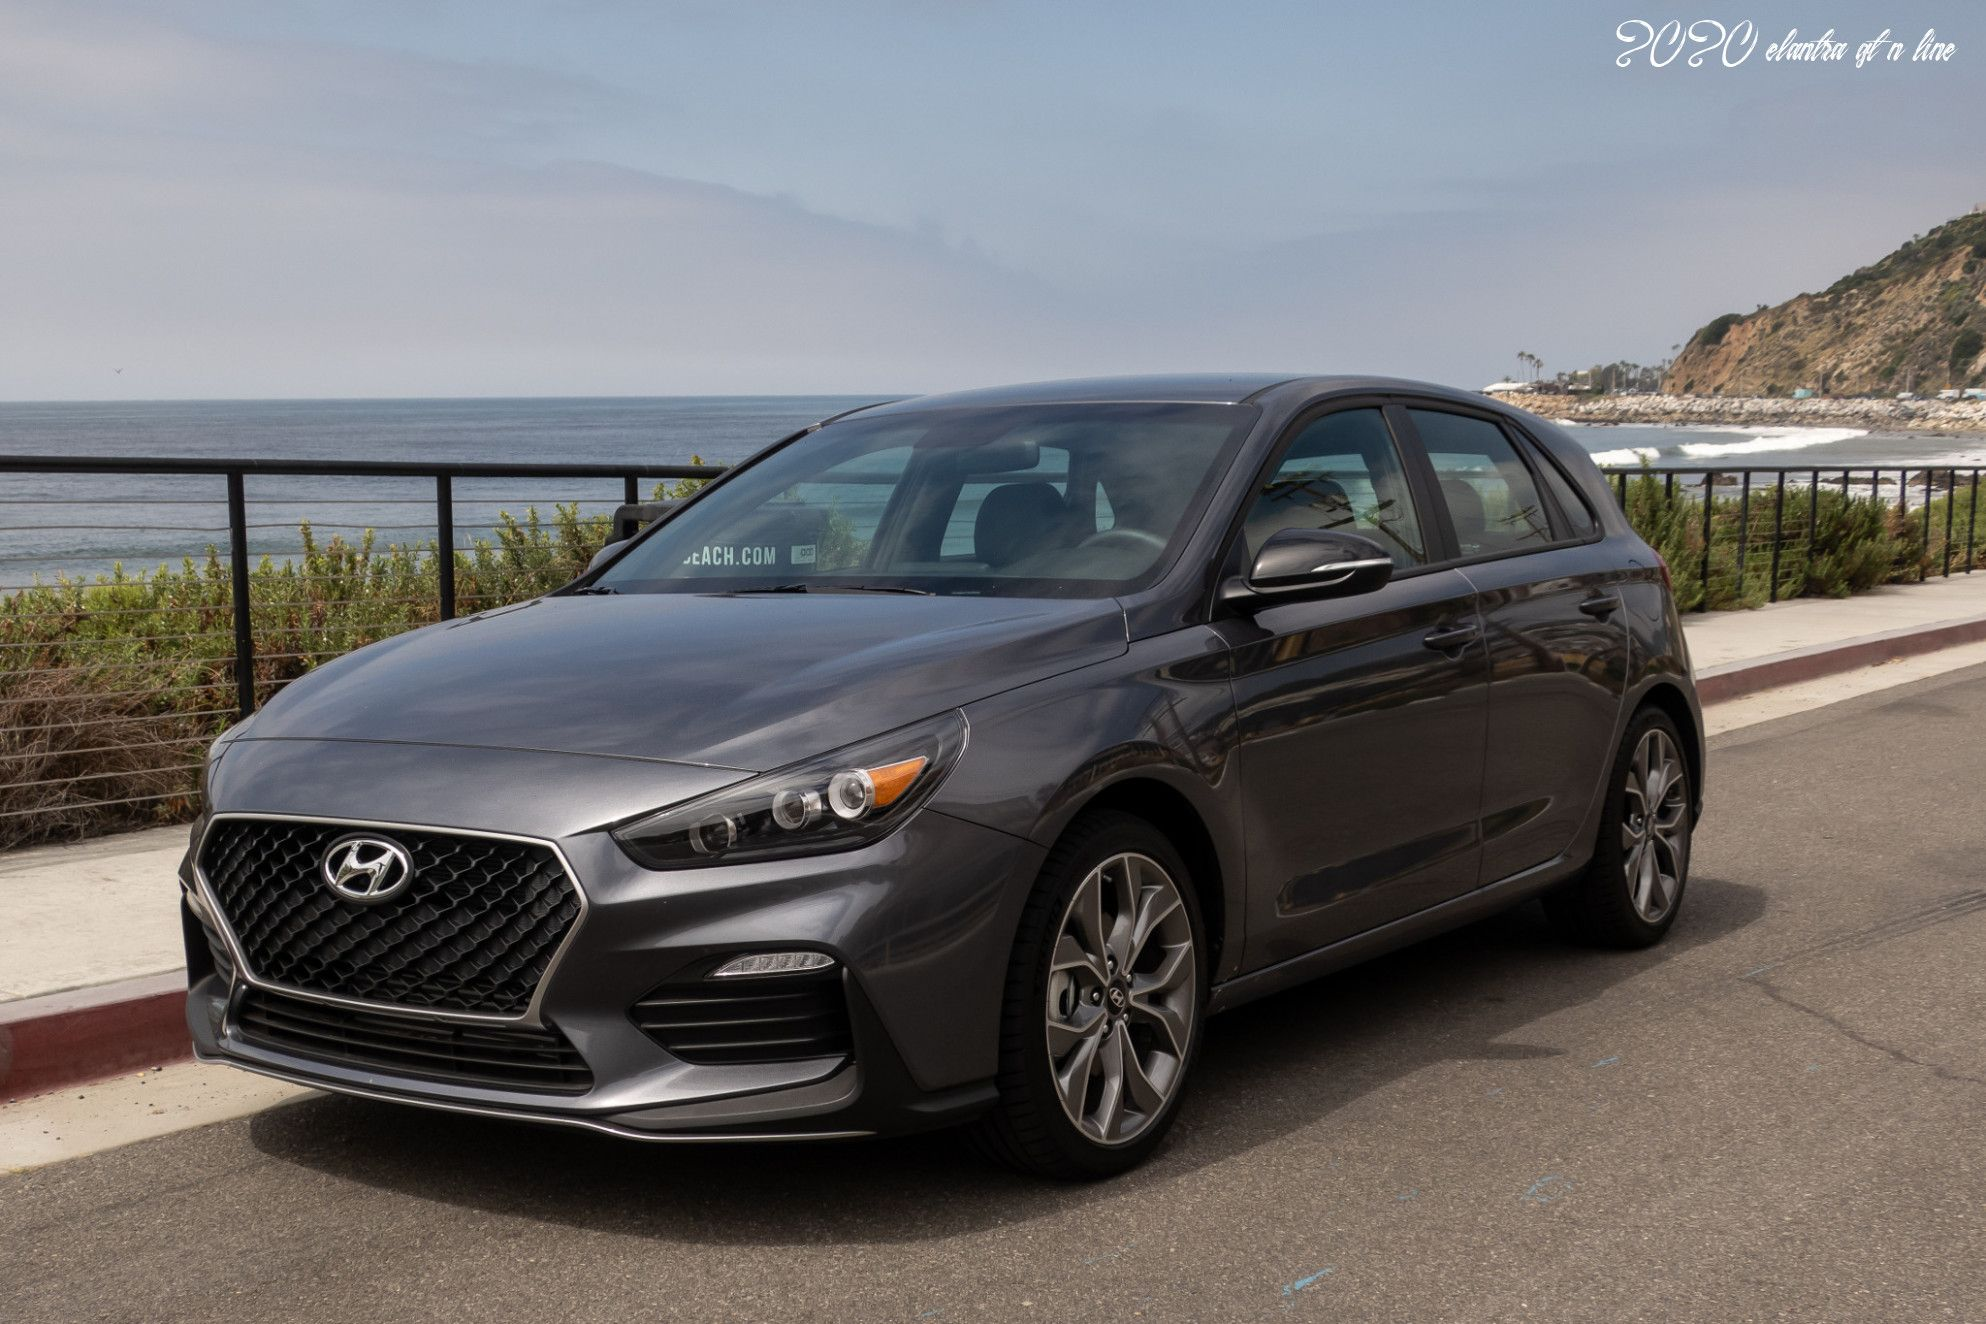 2020 Elantra Gt N Line Redesign And Review In 2020 Hyundai Elantra Hyundai Elantra